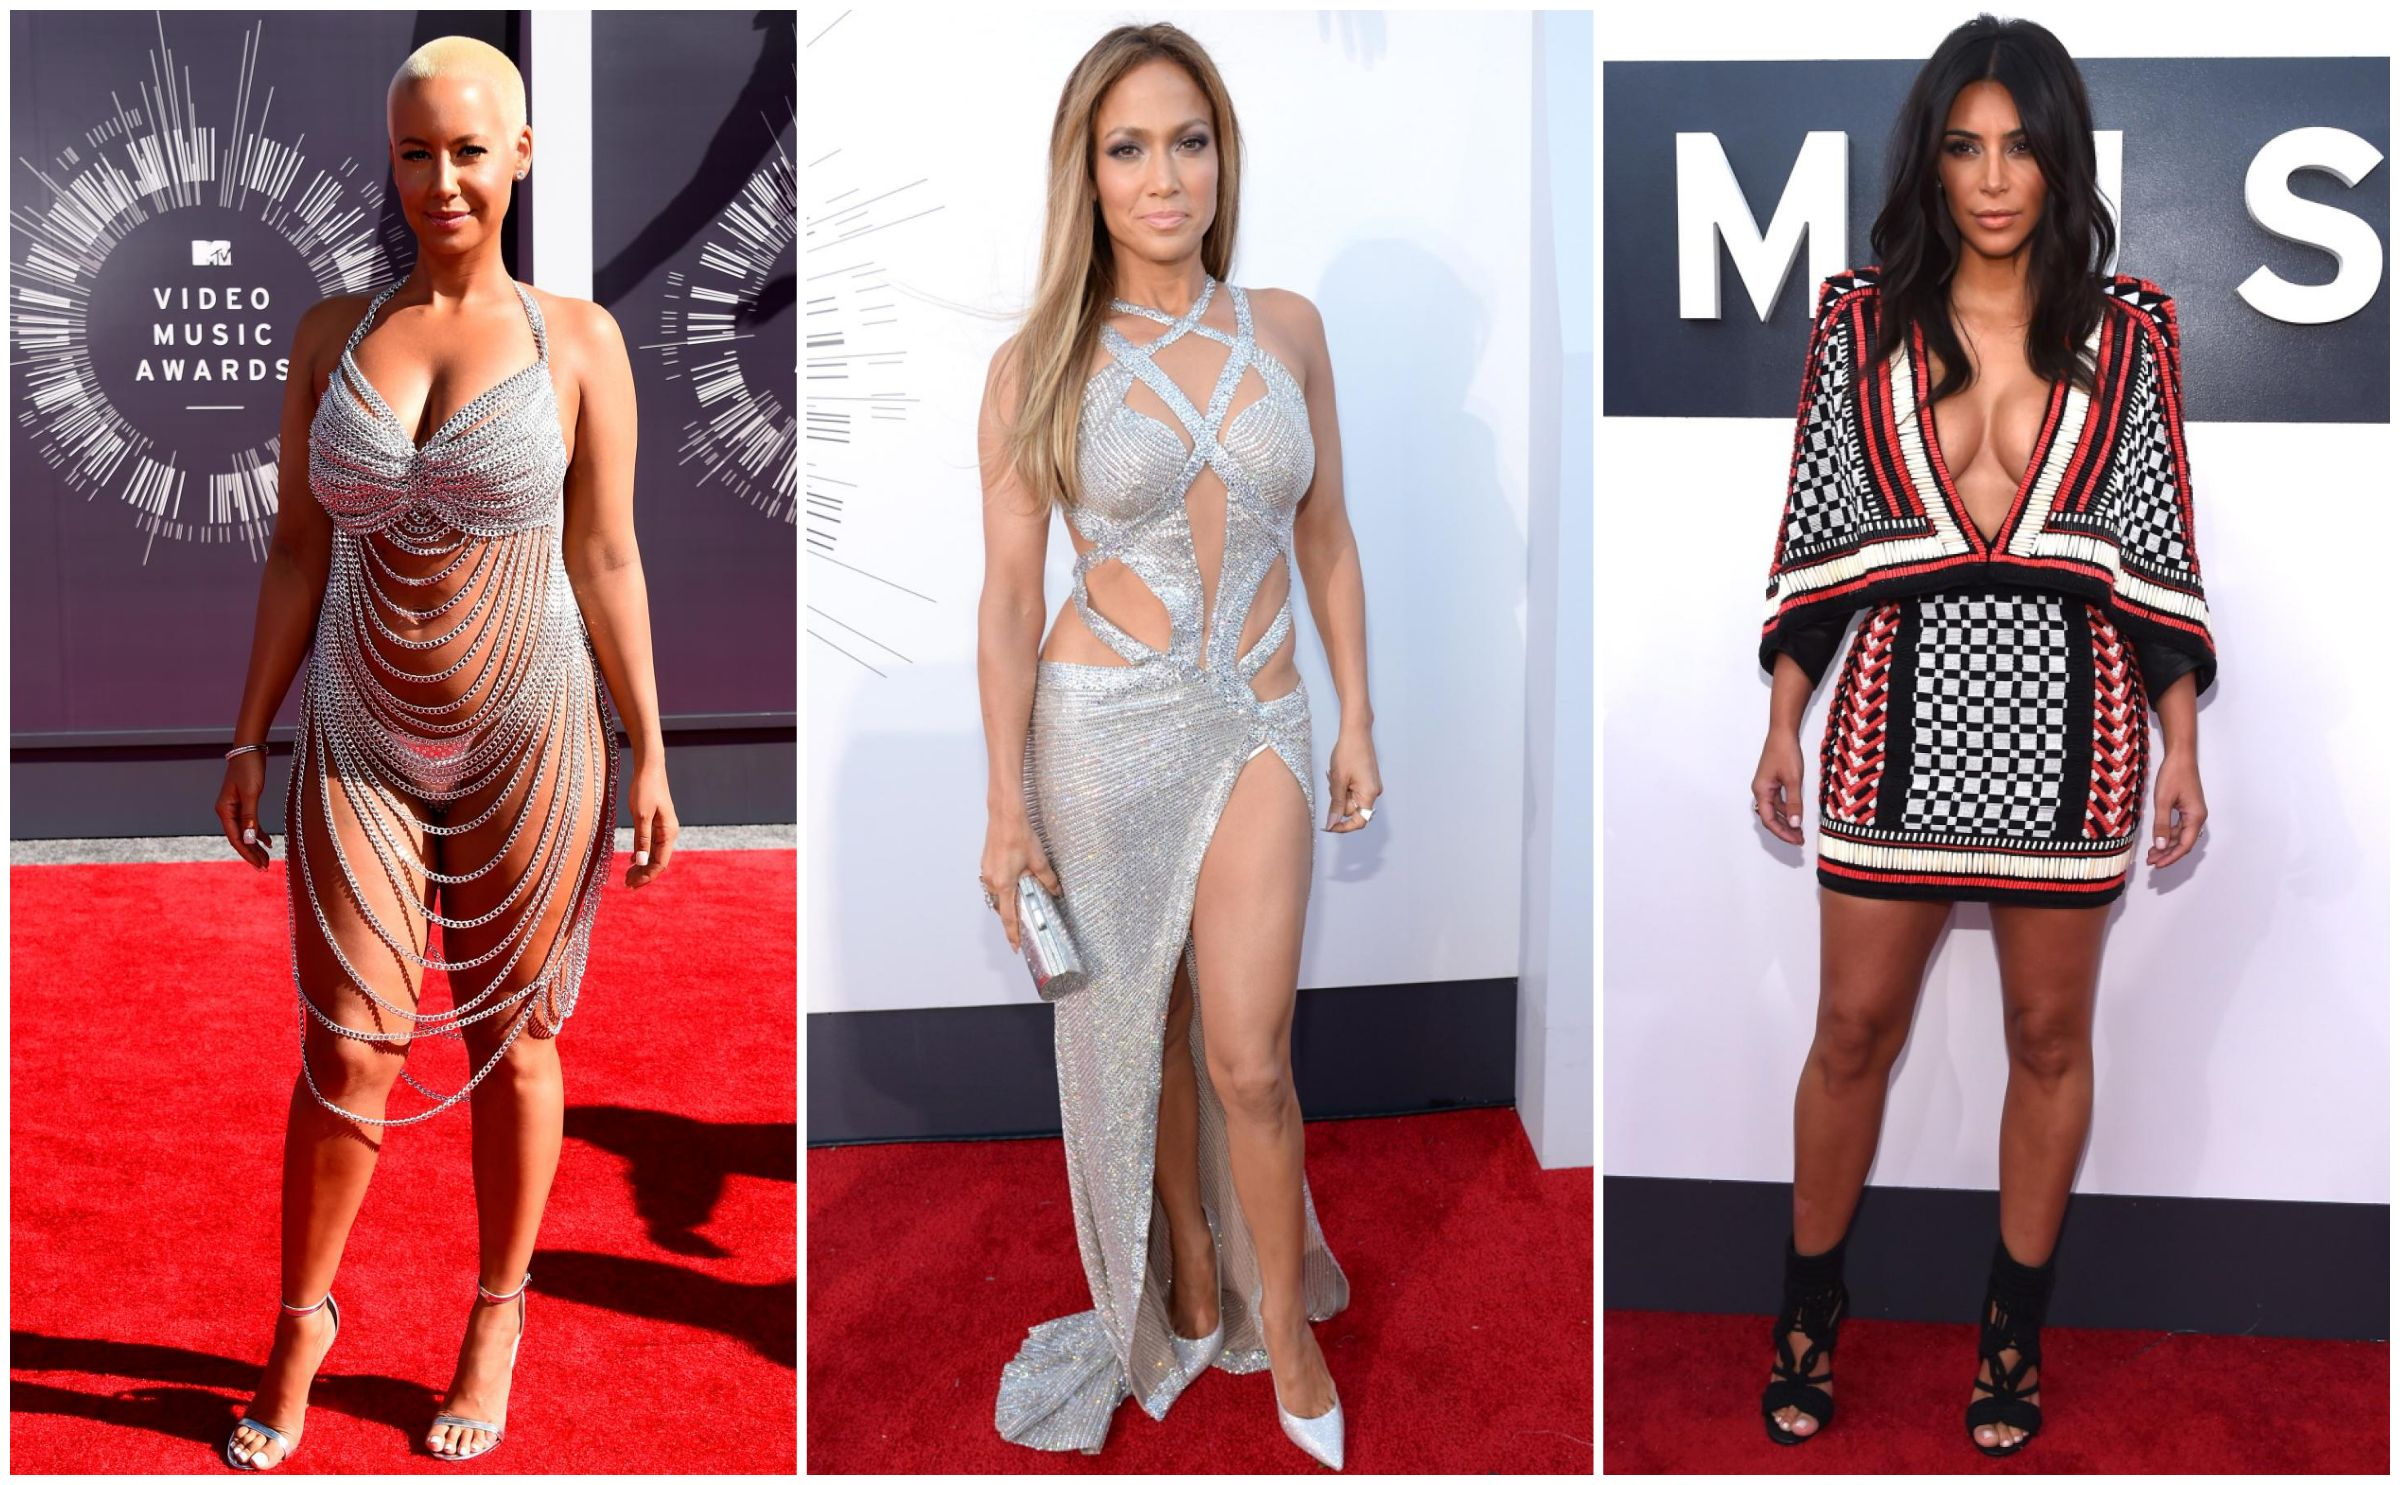 Best & Worst of the 2014 MTV VMAs Red Carpet